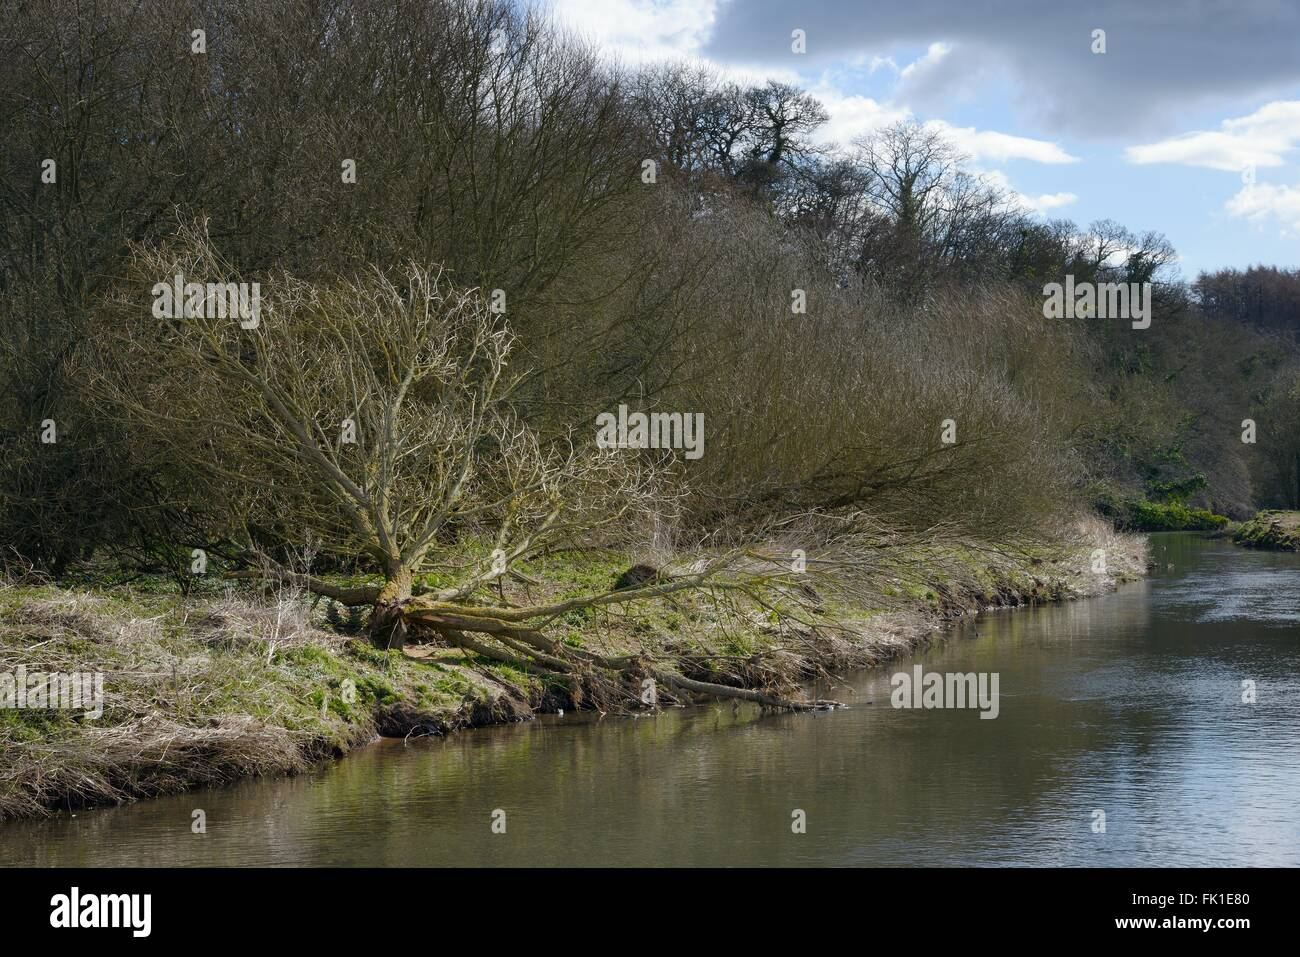 Willow tree (Salix sp.) felled by Eurasian beavers (Castor fiber) on the banks of the River Otter, Devon, UK, March. - Stock Image